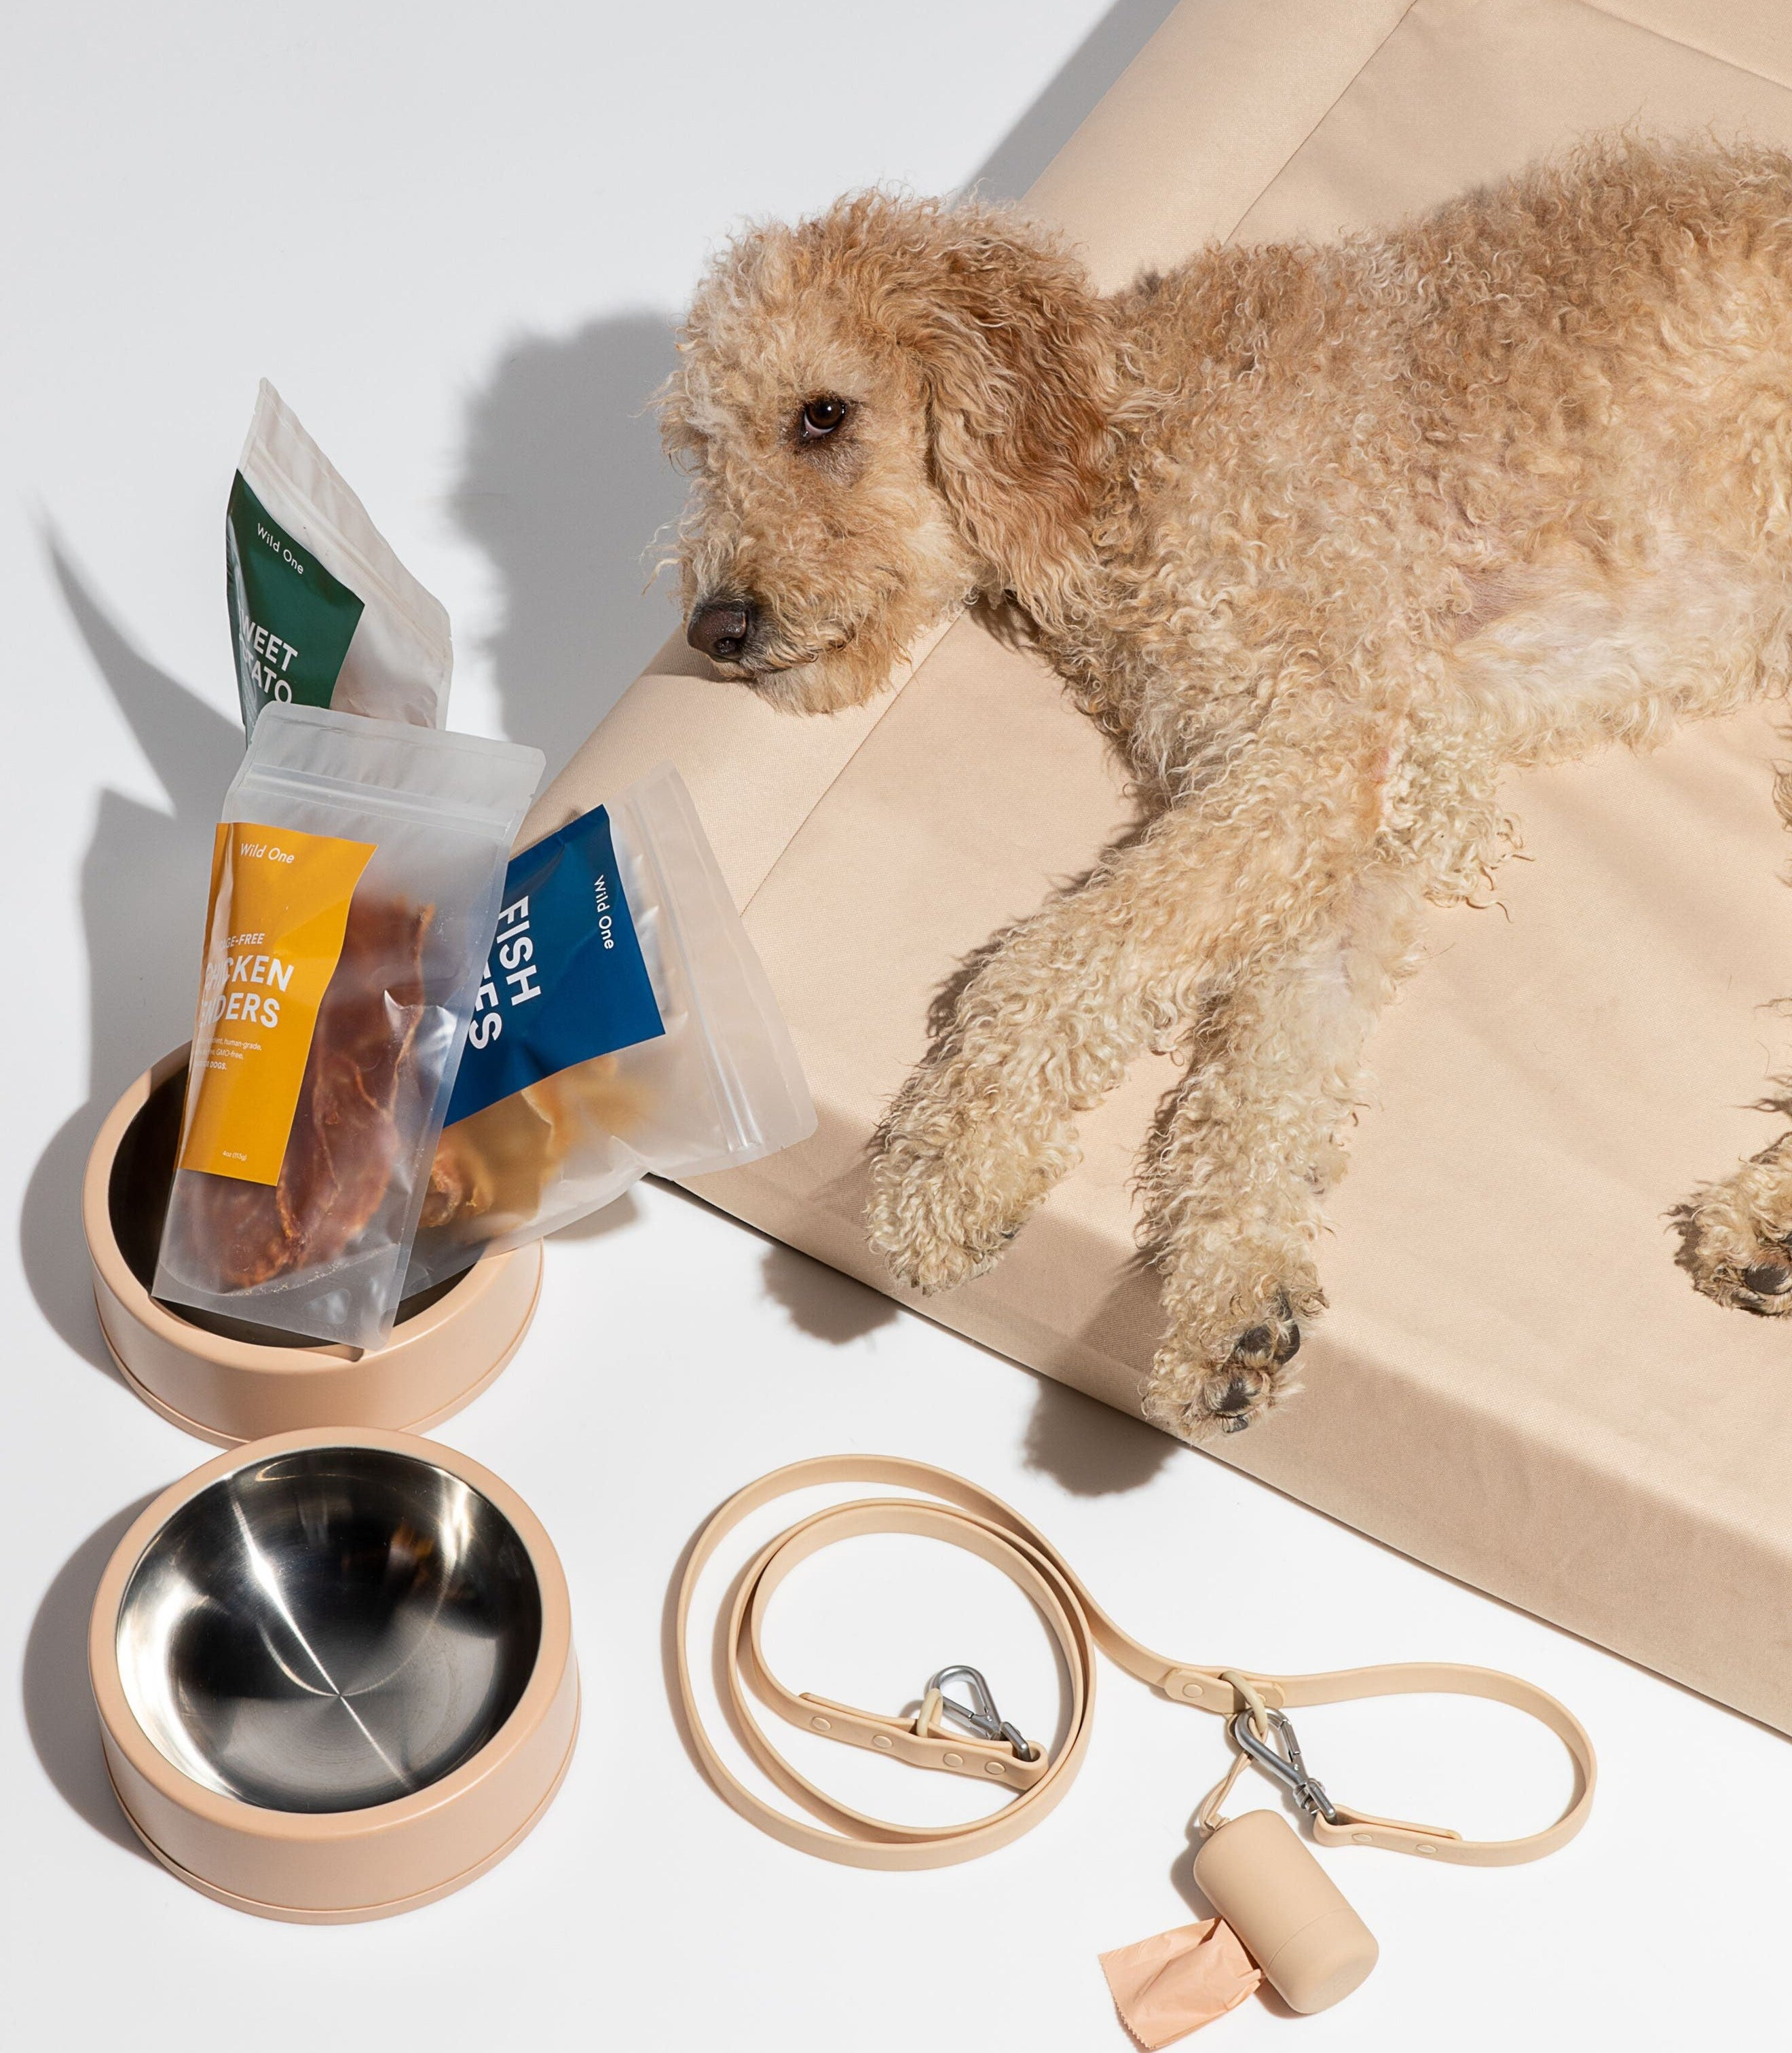 golden doodle on a dog bed lying next to dog bowls and other dog accessories